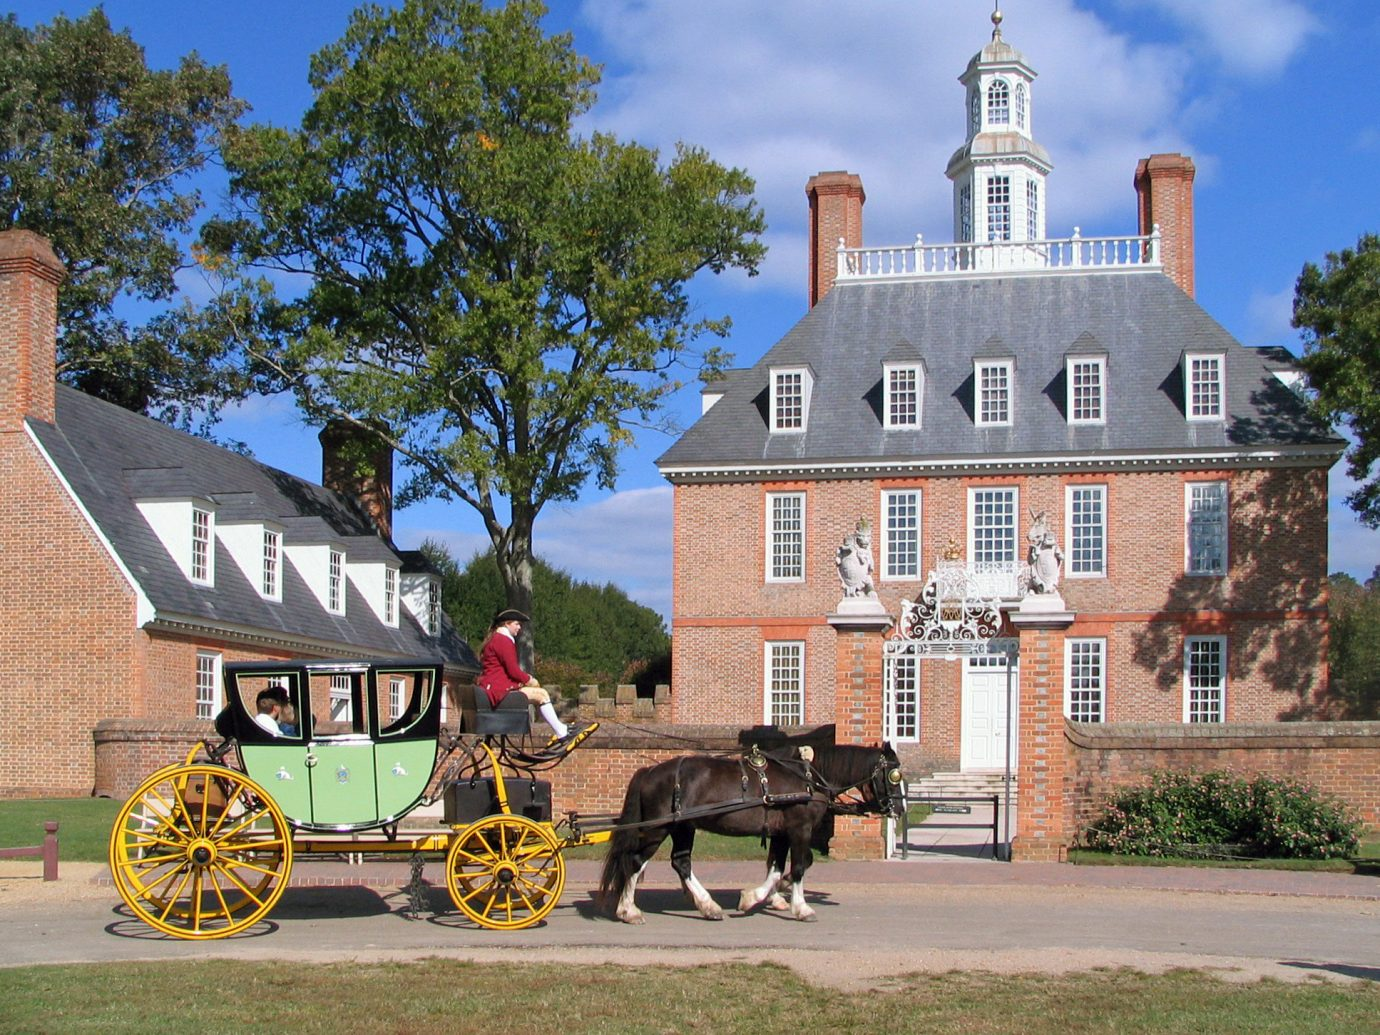 Trip Ideas outdoor tree building road carriage Town landmark street drawn house estate vacation tourism pulling home château place of worship Church horse-drawn vehicle cart